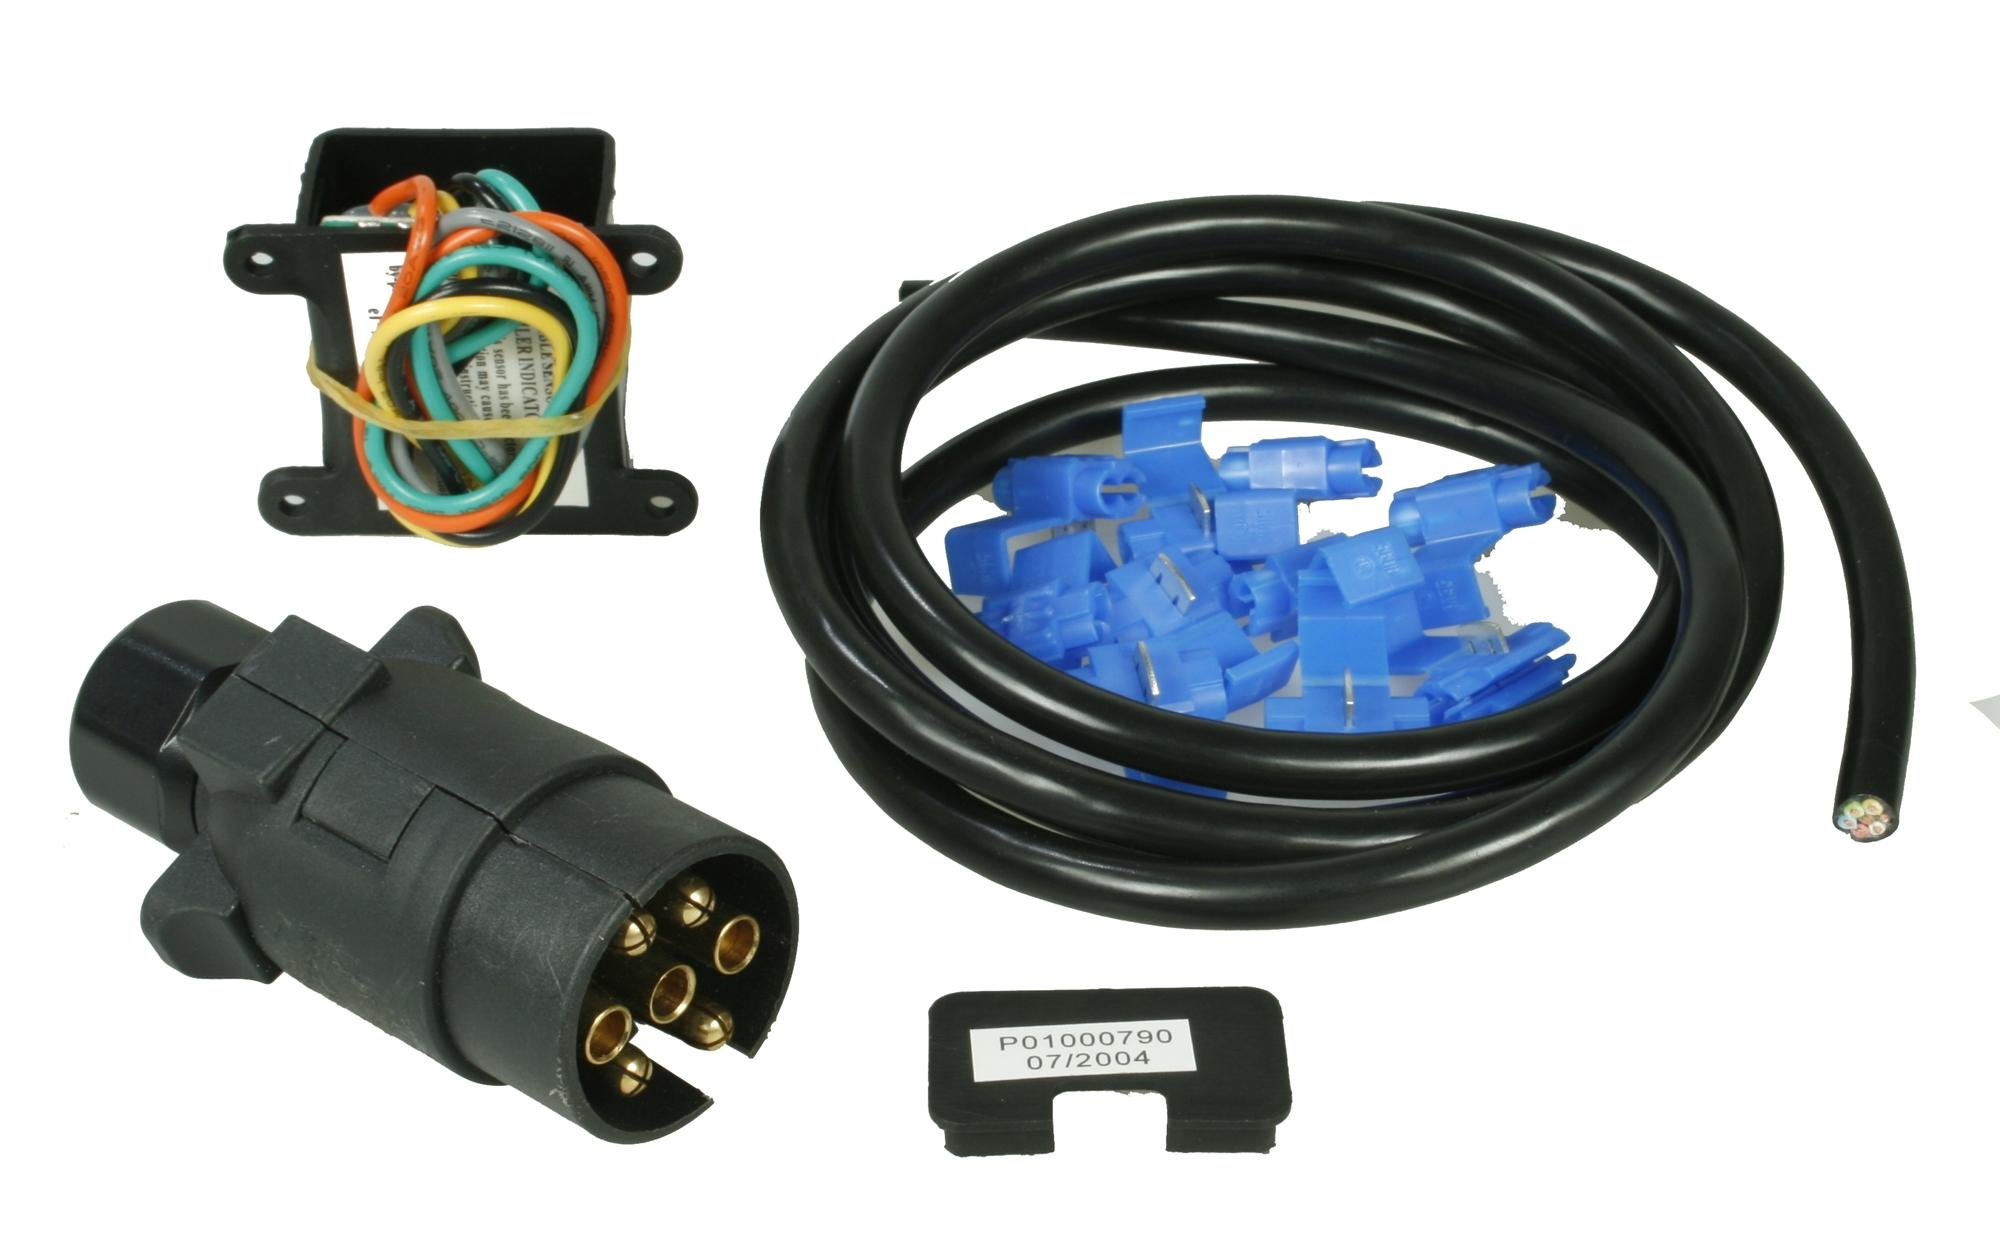 halfords cycle carrier lighting boa rh halfords com  halfords cycle carrier lighting board wiring kit